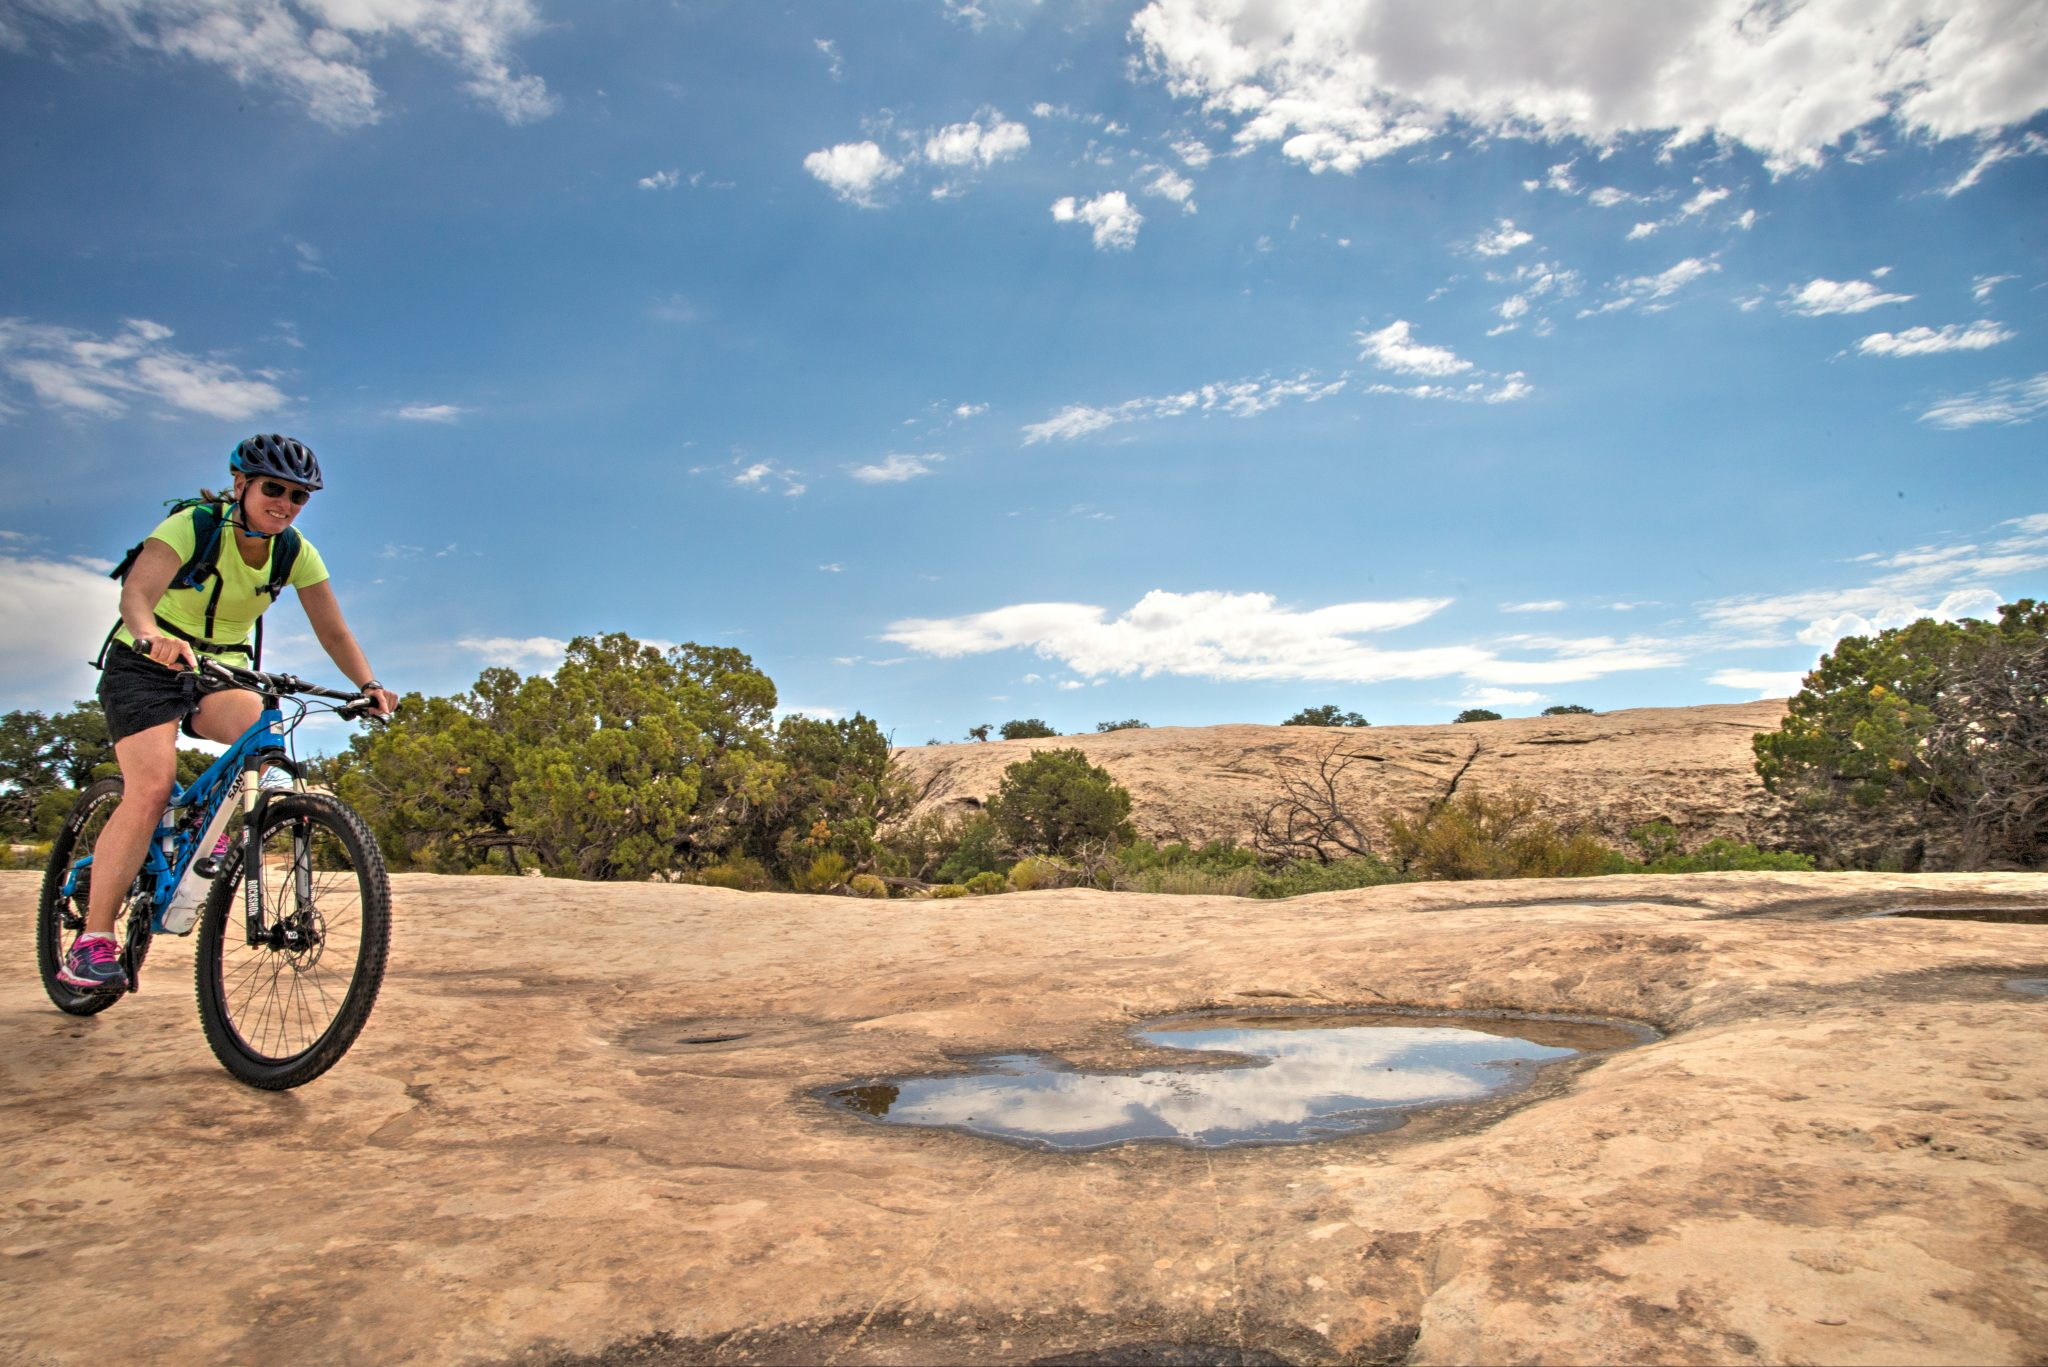 Potholes filled by a recent rain reflect the sunny skies as a rider descends the slickrock section of Klondike Bluff Trail